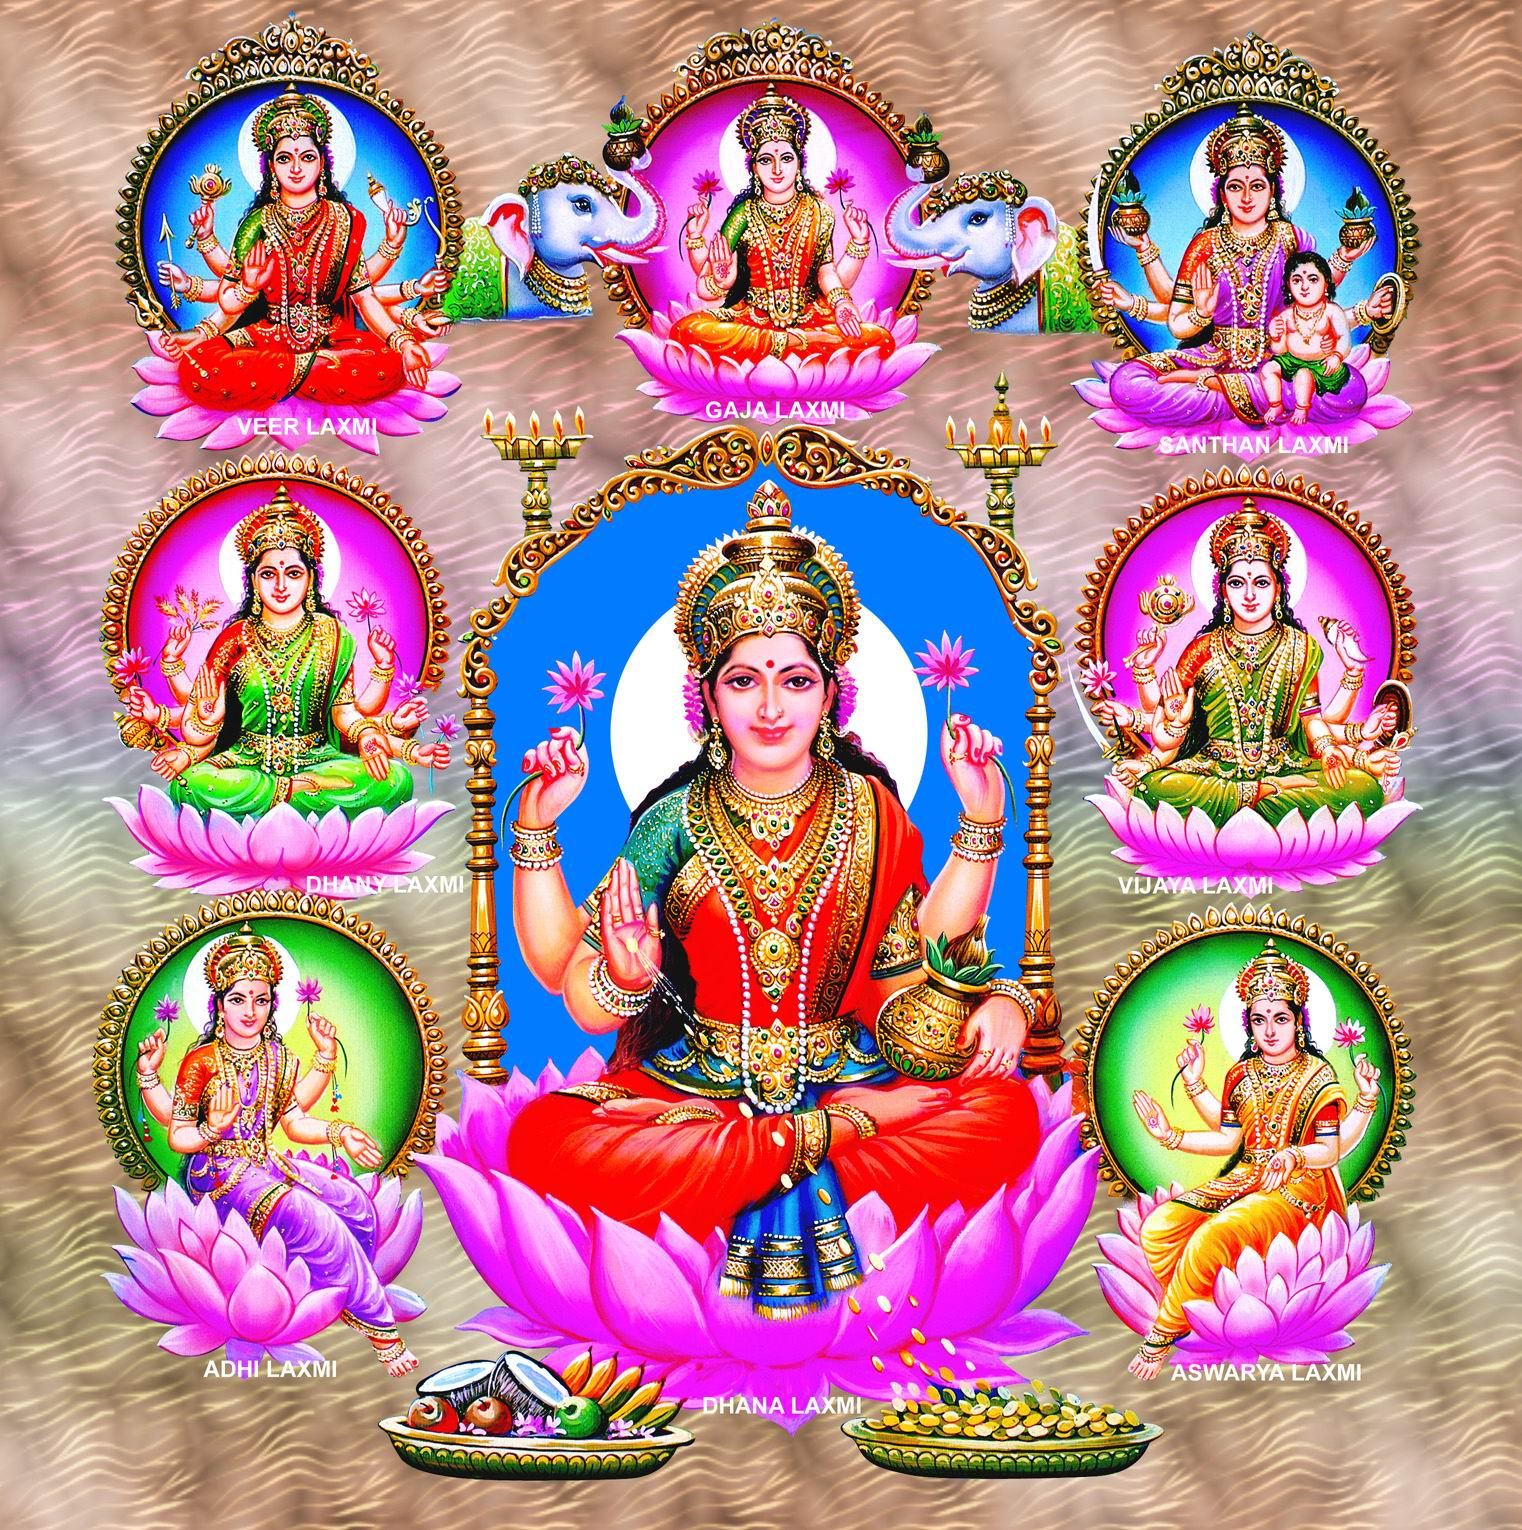 Simple Wallpaper Lord Devi - God%2BLakshmi%2BDevi%2Bhd%2Bwallpapers%2B%25283%2529  Photograph_201210.jpg